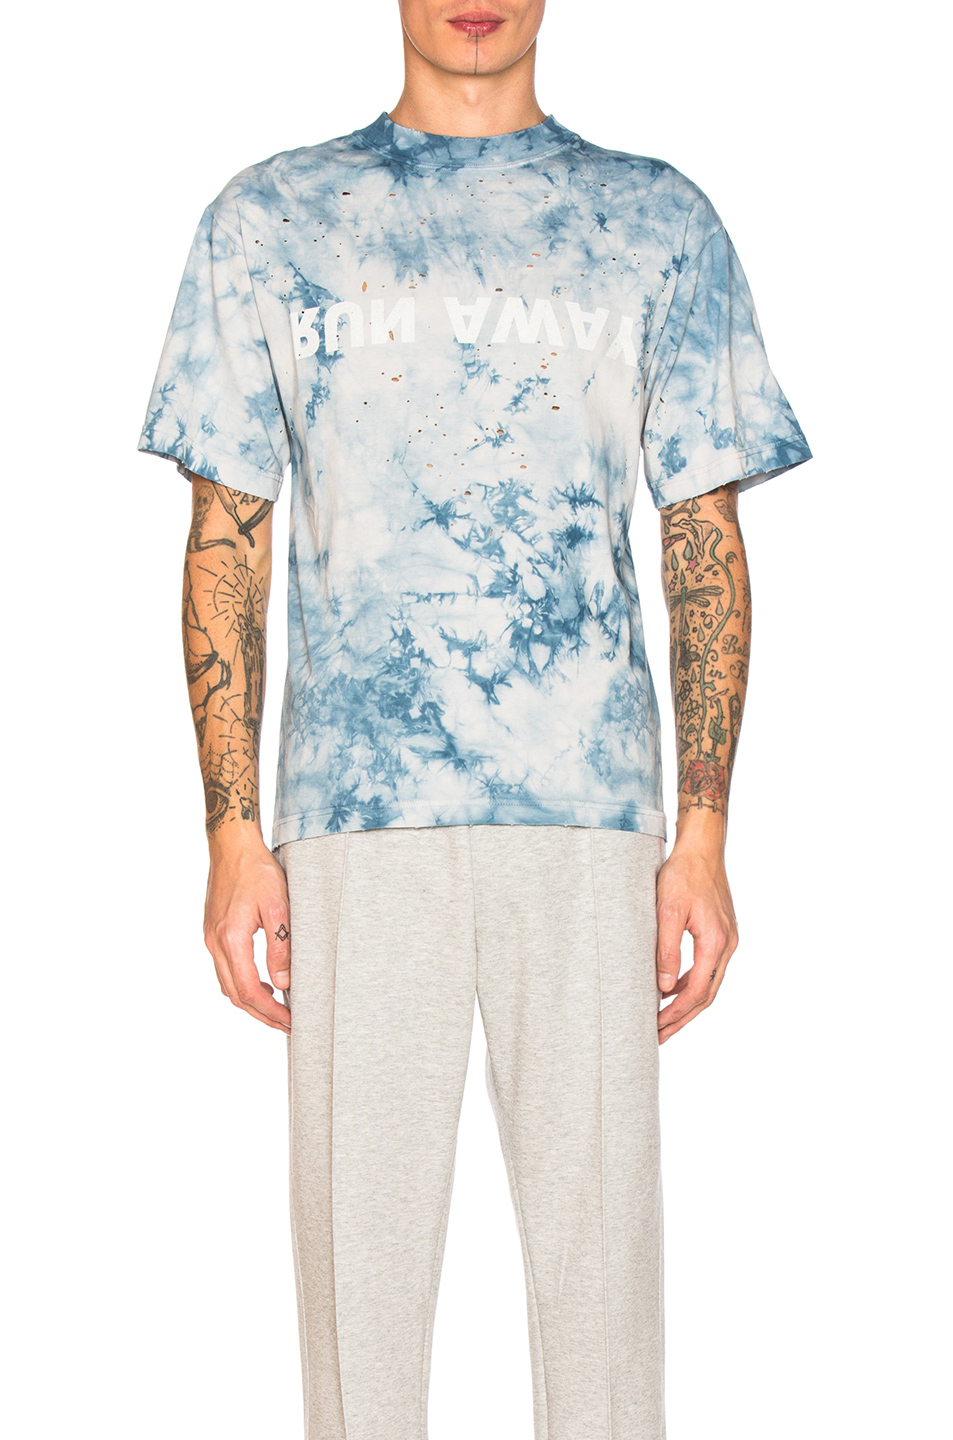 Satisfy Run Away Moth Eaten Tee in Blue,Ombre & Tie Dye